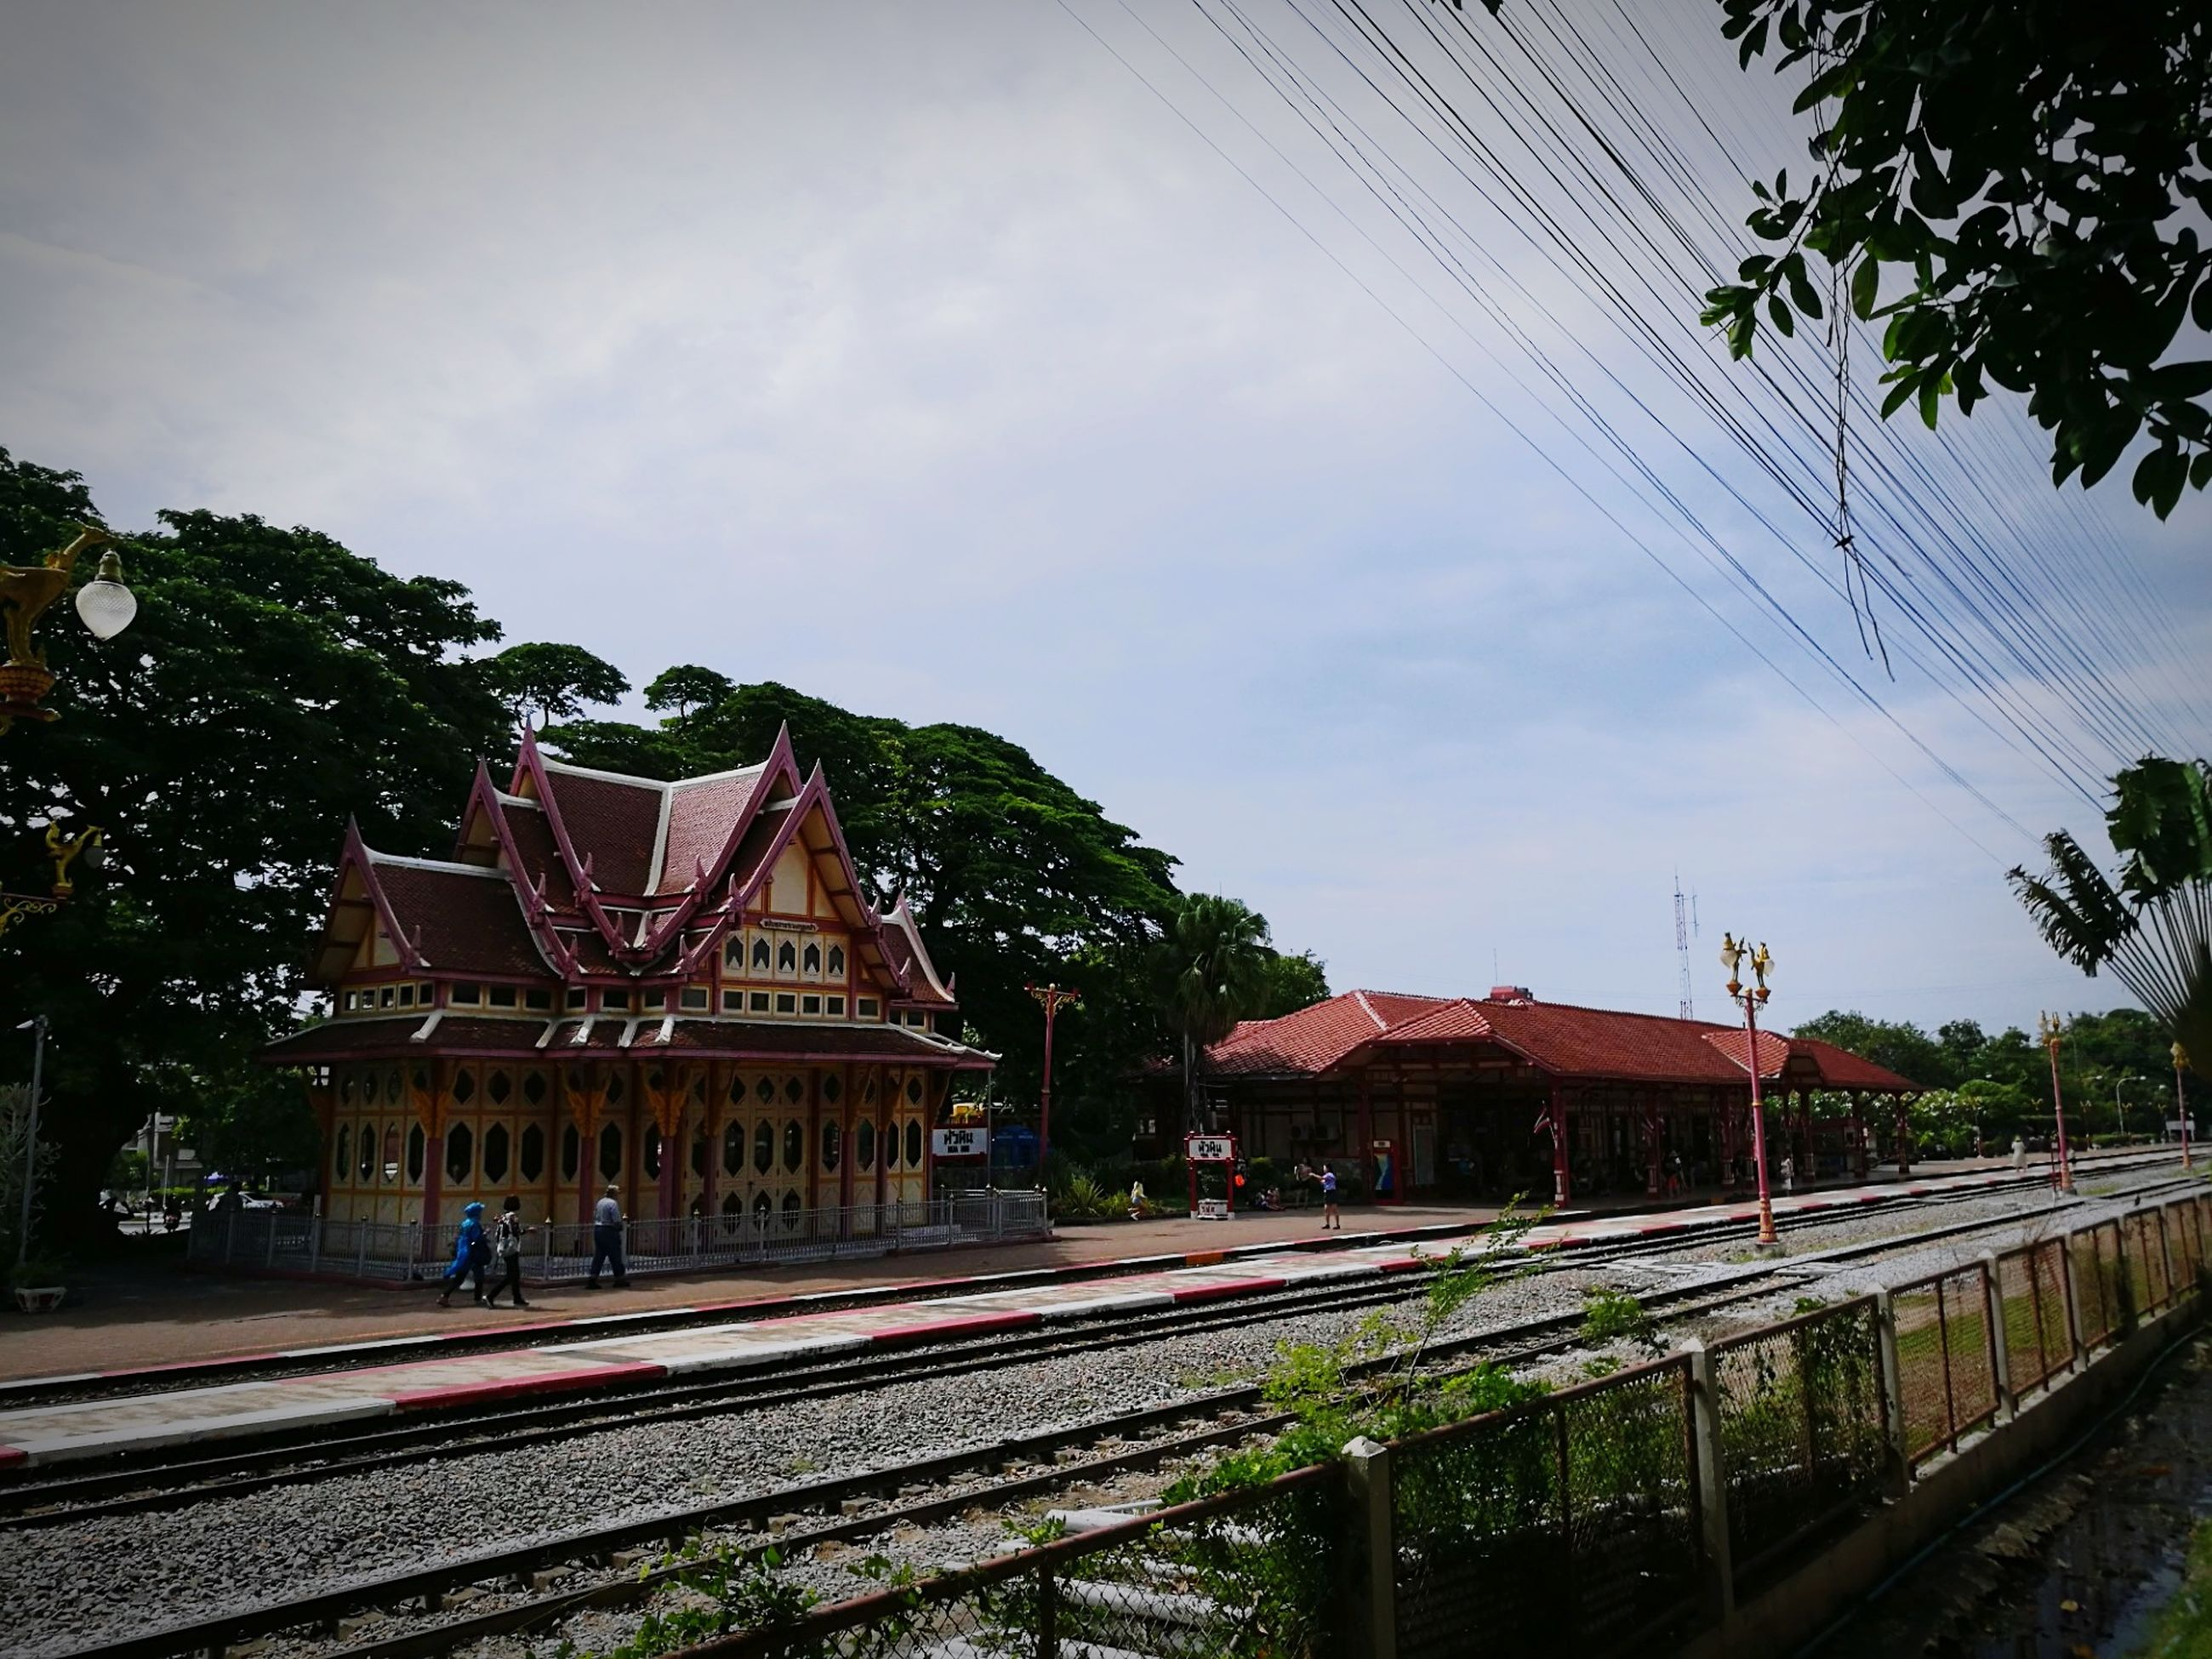 architecture, built structure, sky, building exterior, railroad track, track, rail transportation, transportation, tree, building, city, nature, cloud - sky, plant, mode of transportation, cable, no people, street, public transportation, day, electricity, outdoors